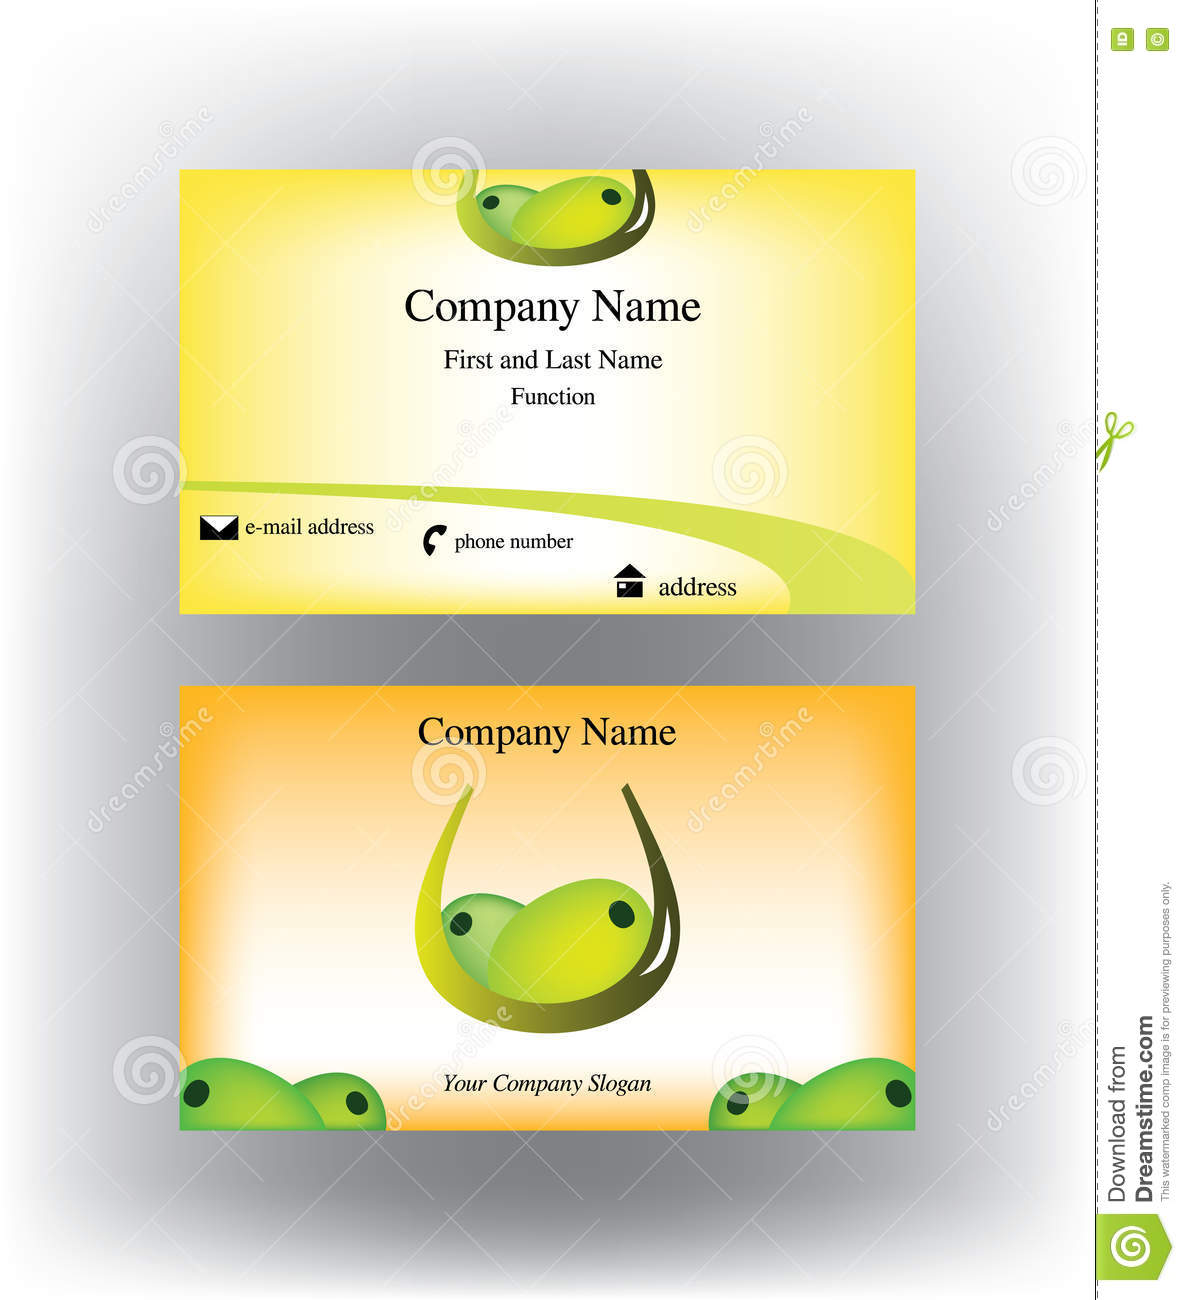 Business Card With Olives Design Stock Vector Illustration Of